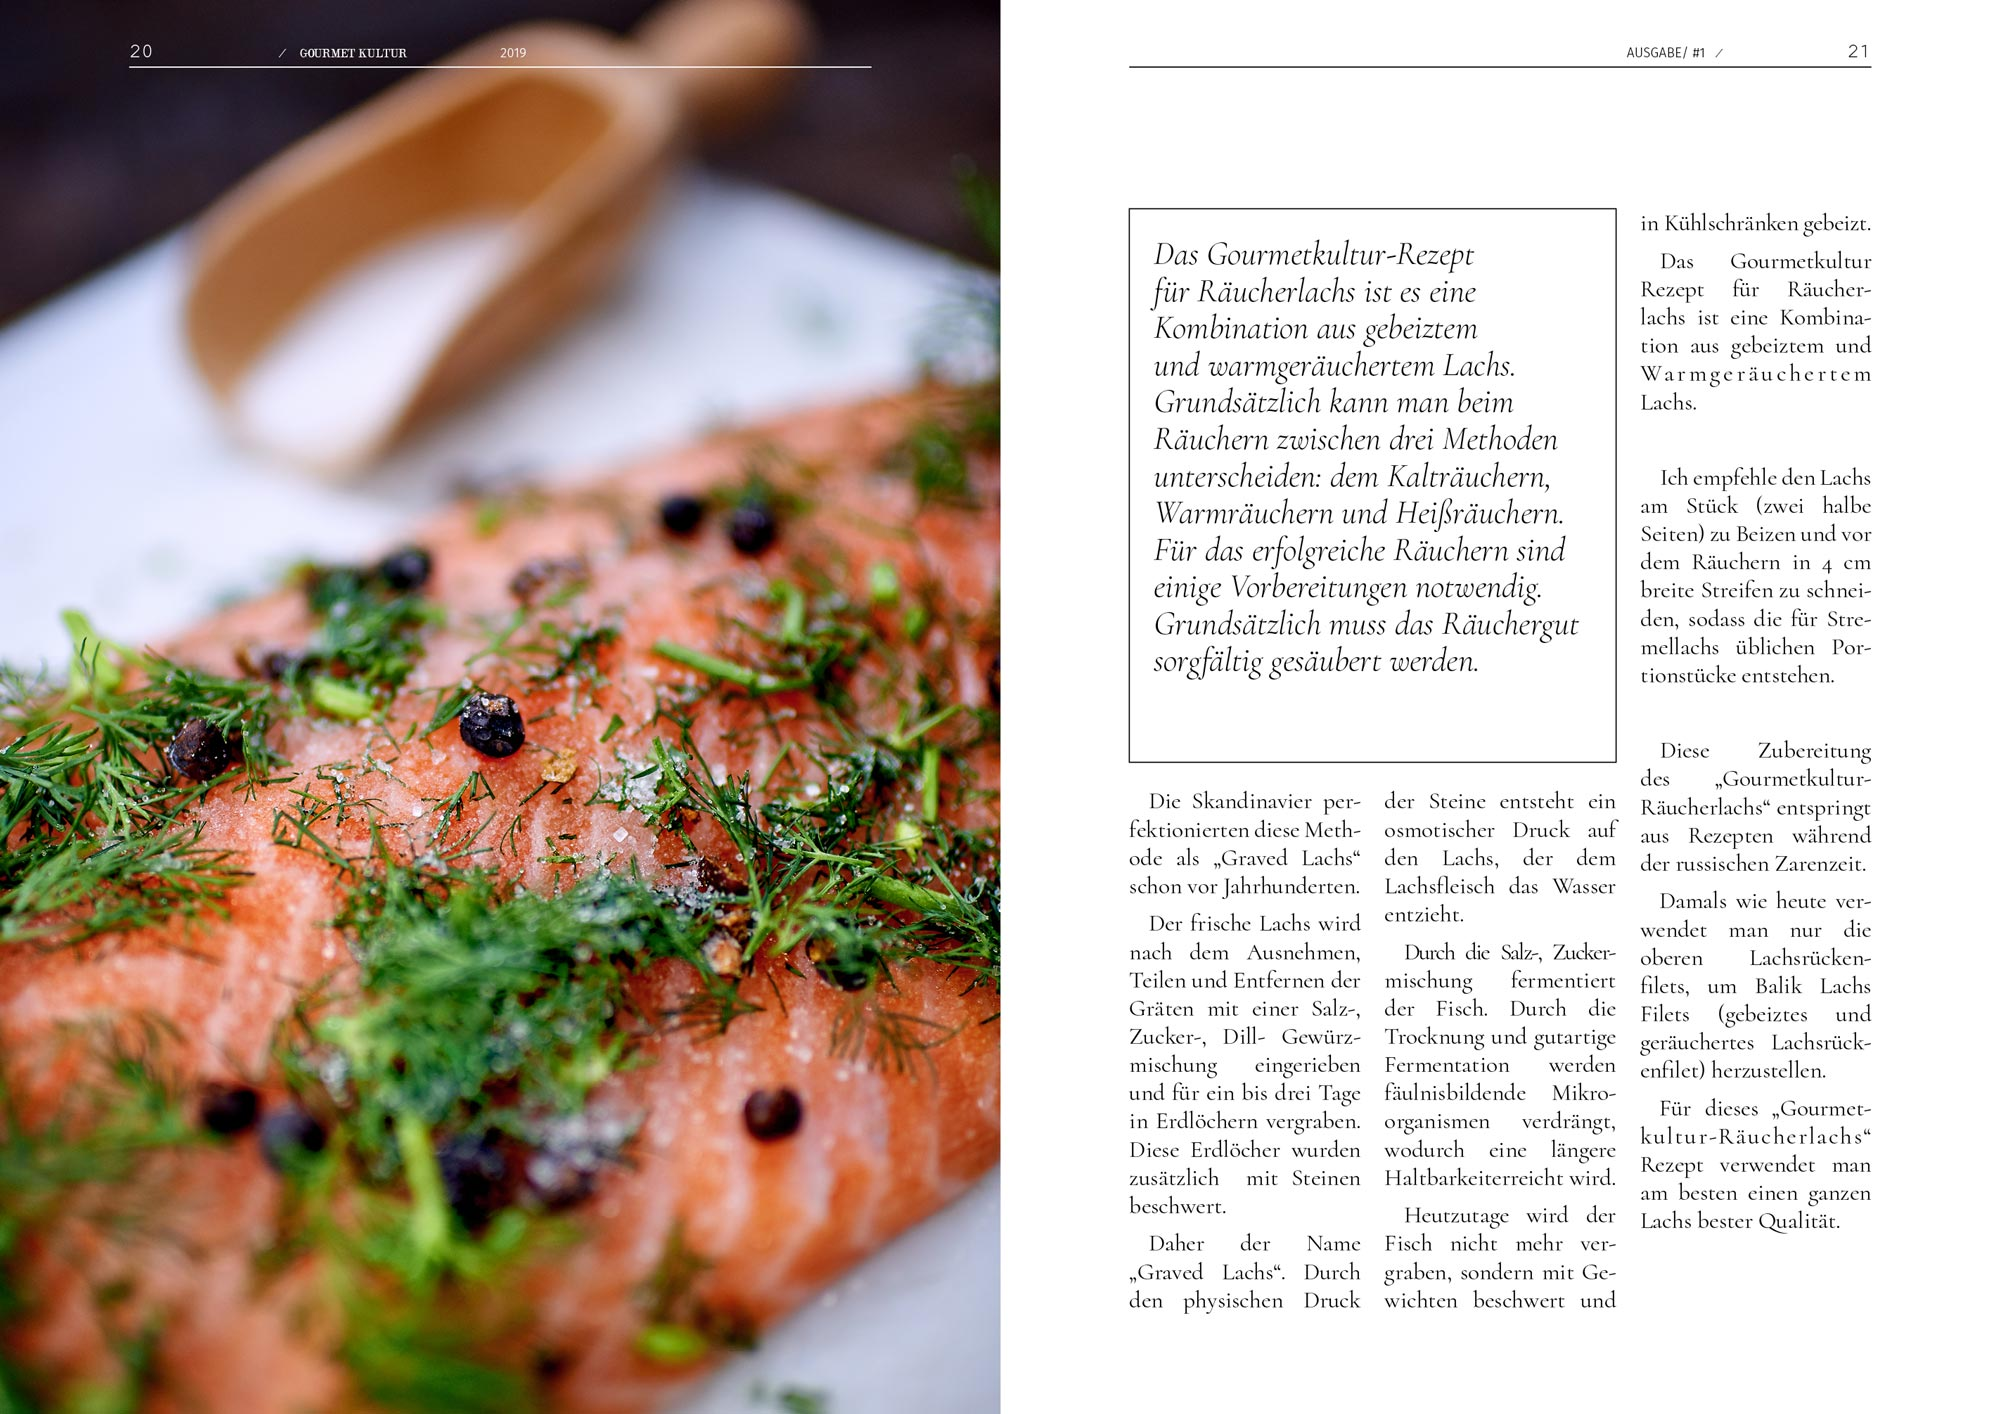 fine-food-blog-magazin-lachs-rauechern Lachs warm räuchern